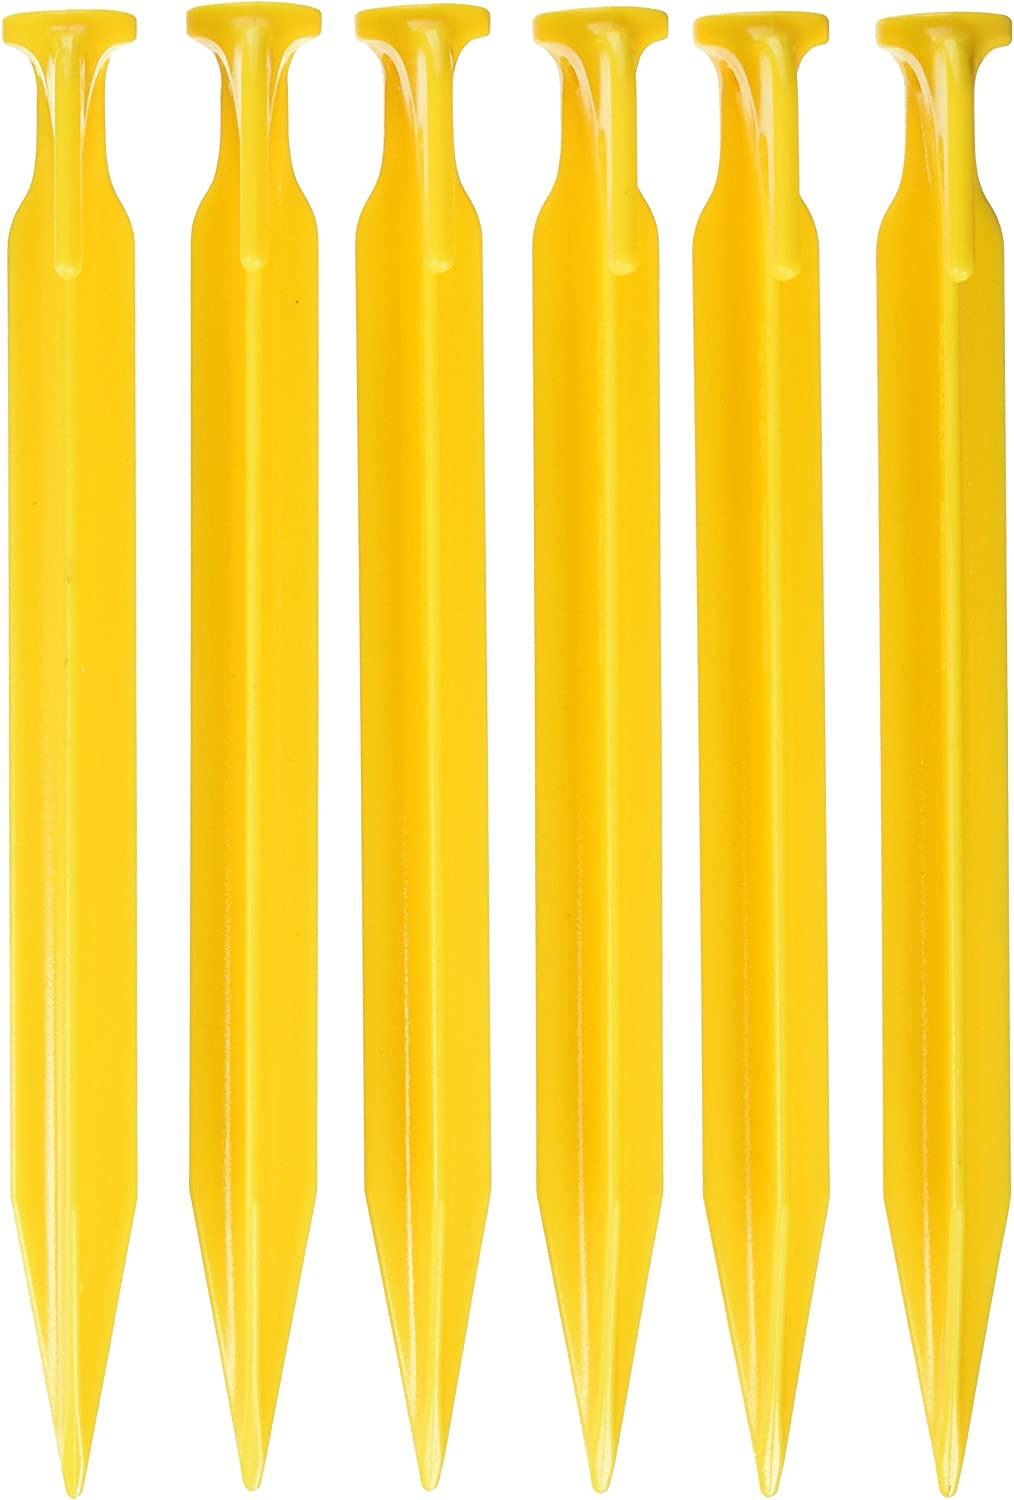 12-6 INCH YELLOW RUGGED ABS TENT PEGS//STAKES NO SLIP HOOKS LIGHTWEIGHT  12 PK